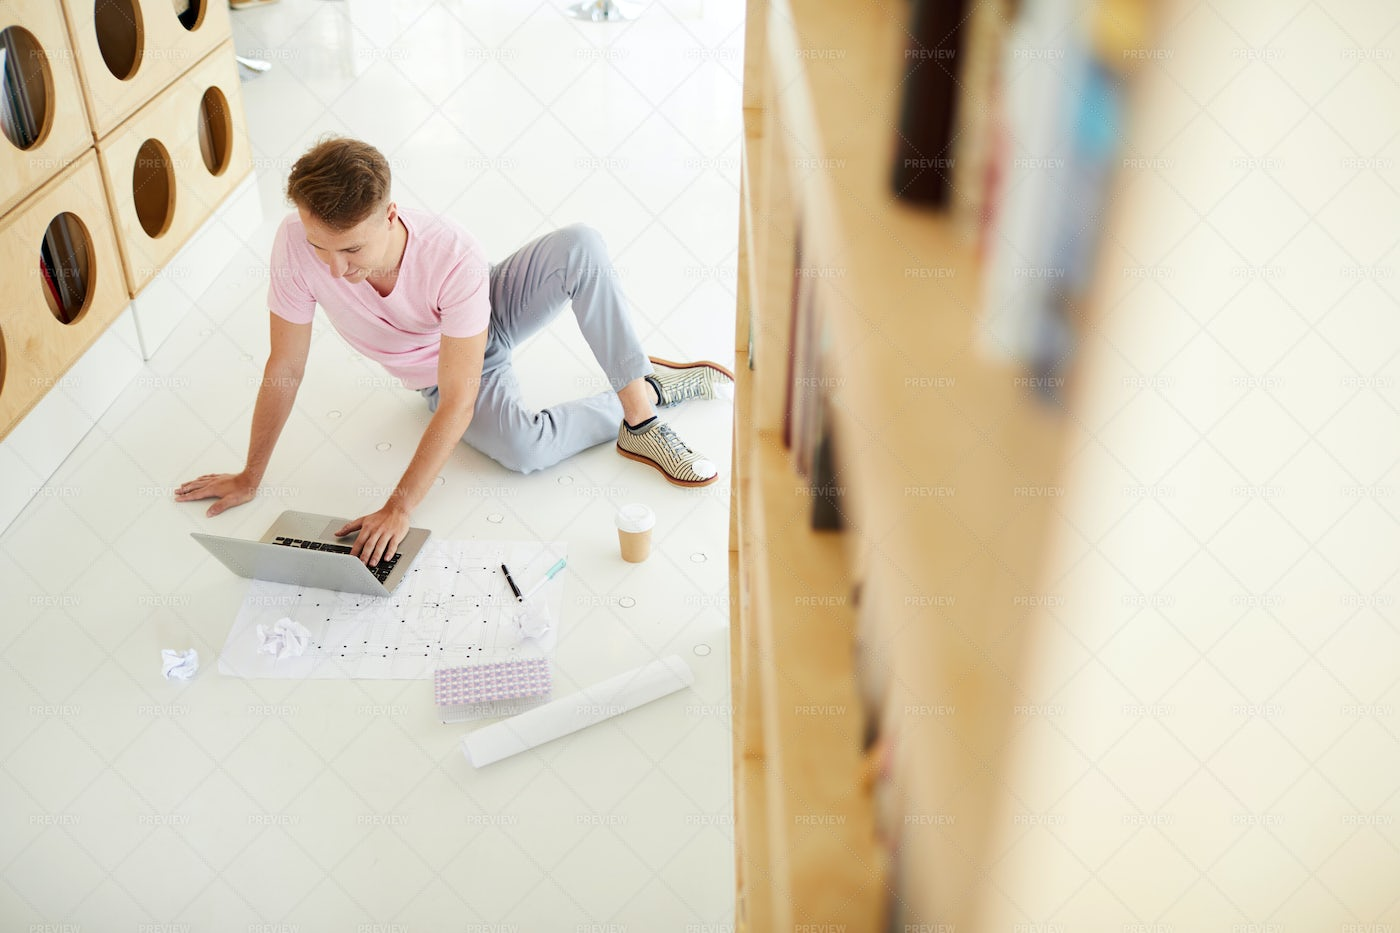 Architecture Student In Library: Stock Photos